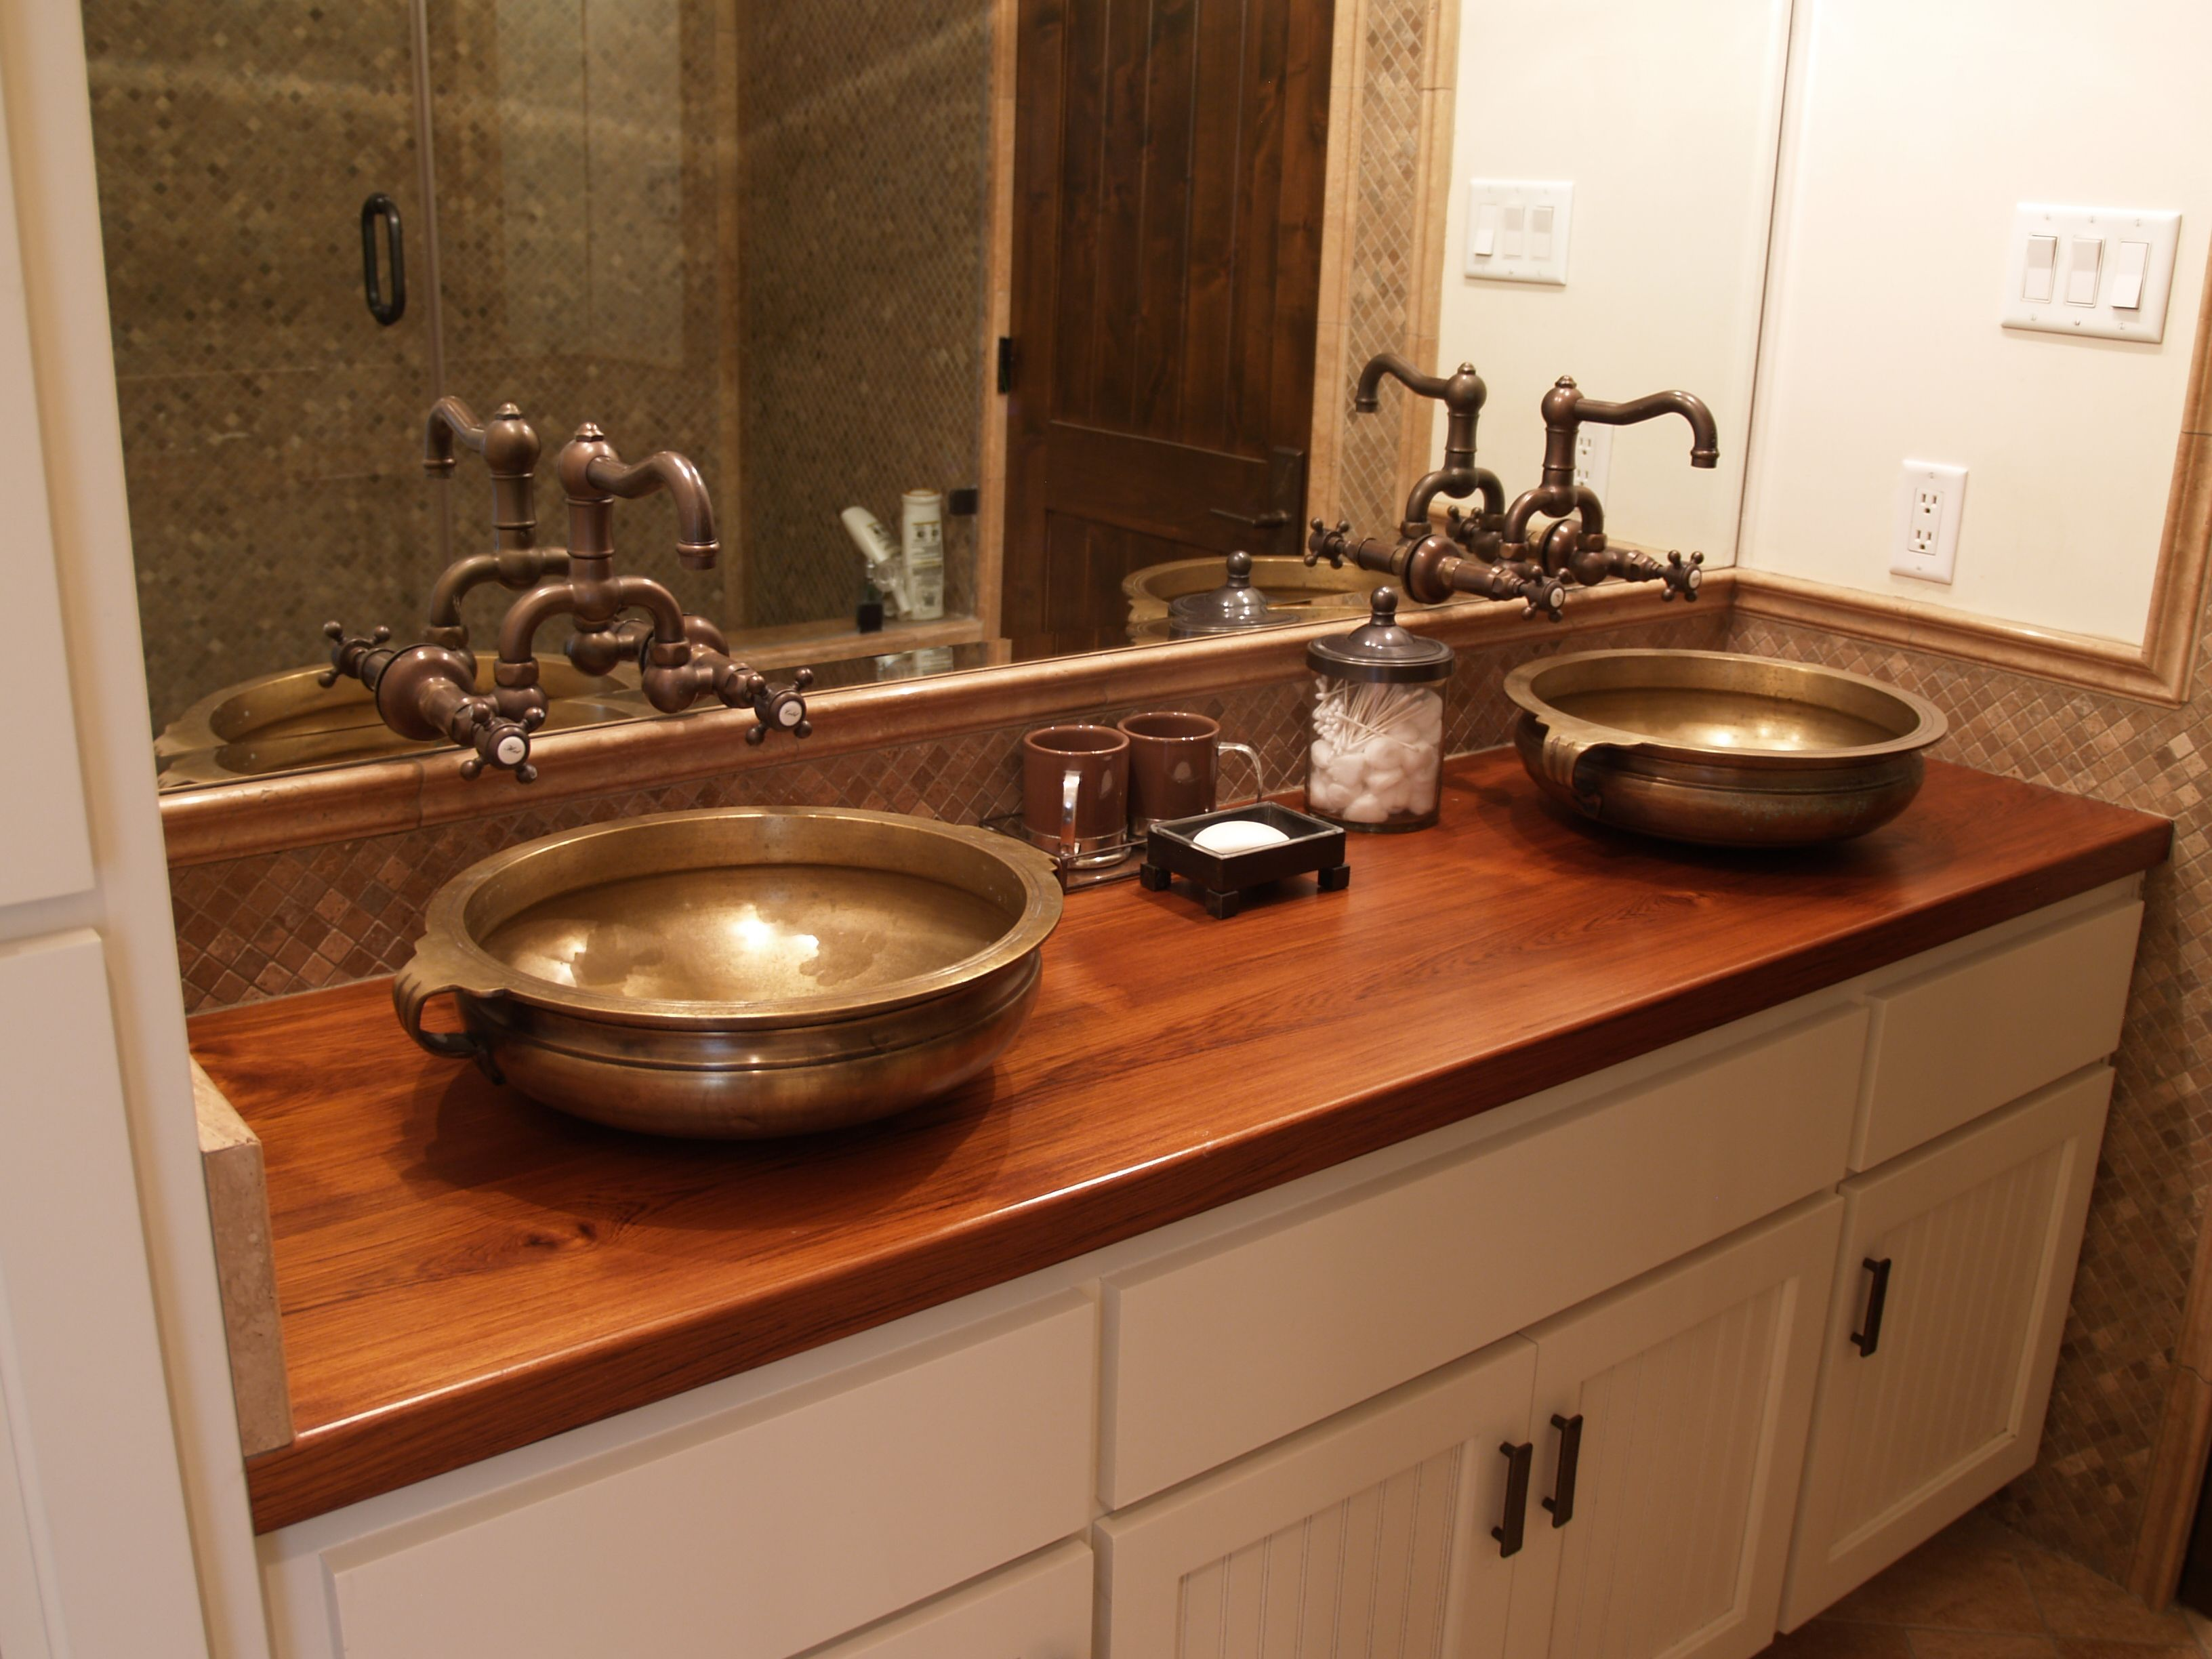 Face Teak Vanity Top with vessel sinks and Waterlox finish. Sink Cutouts in Custom Wood Countertops